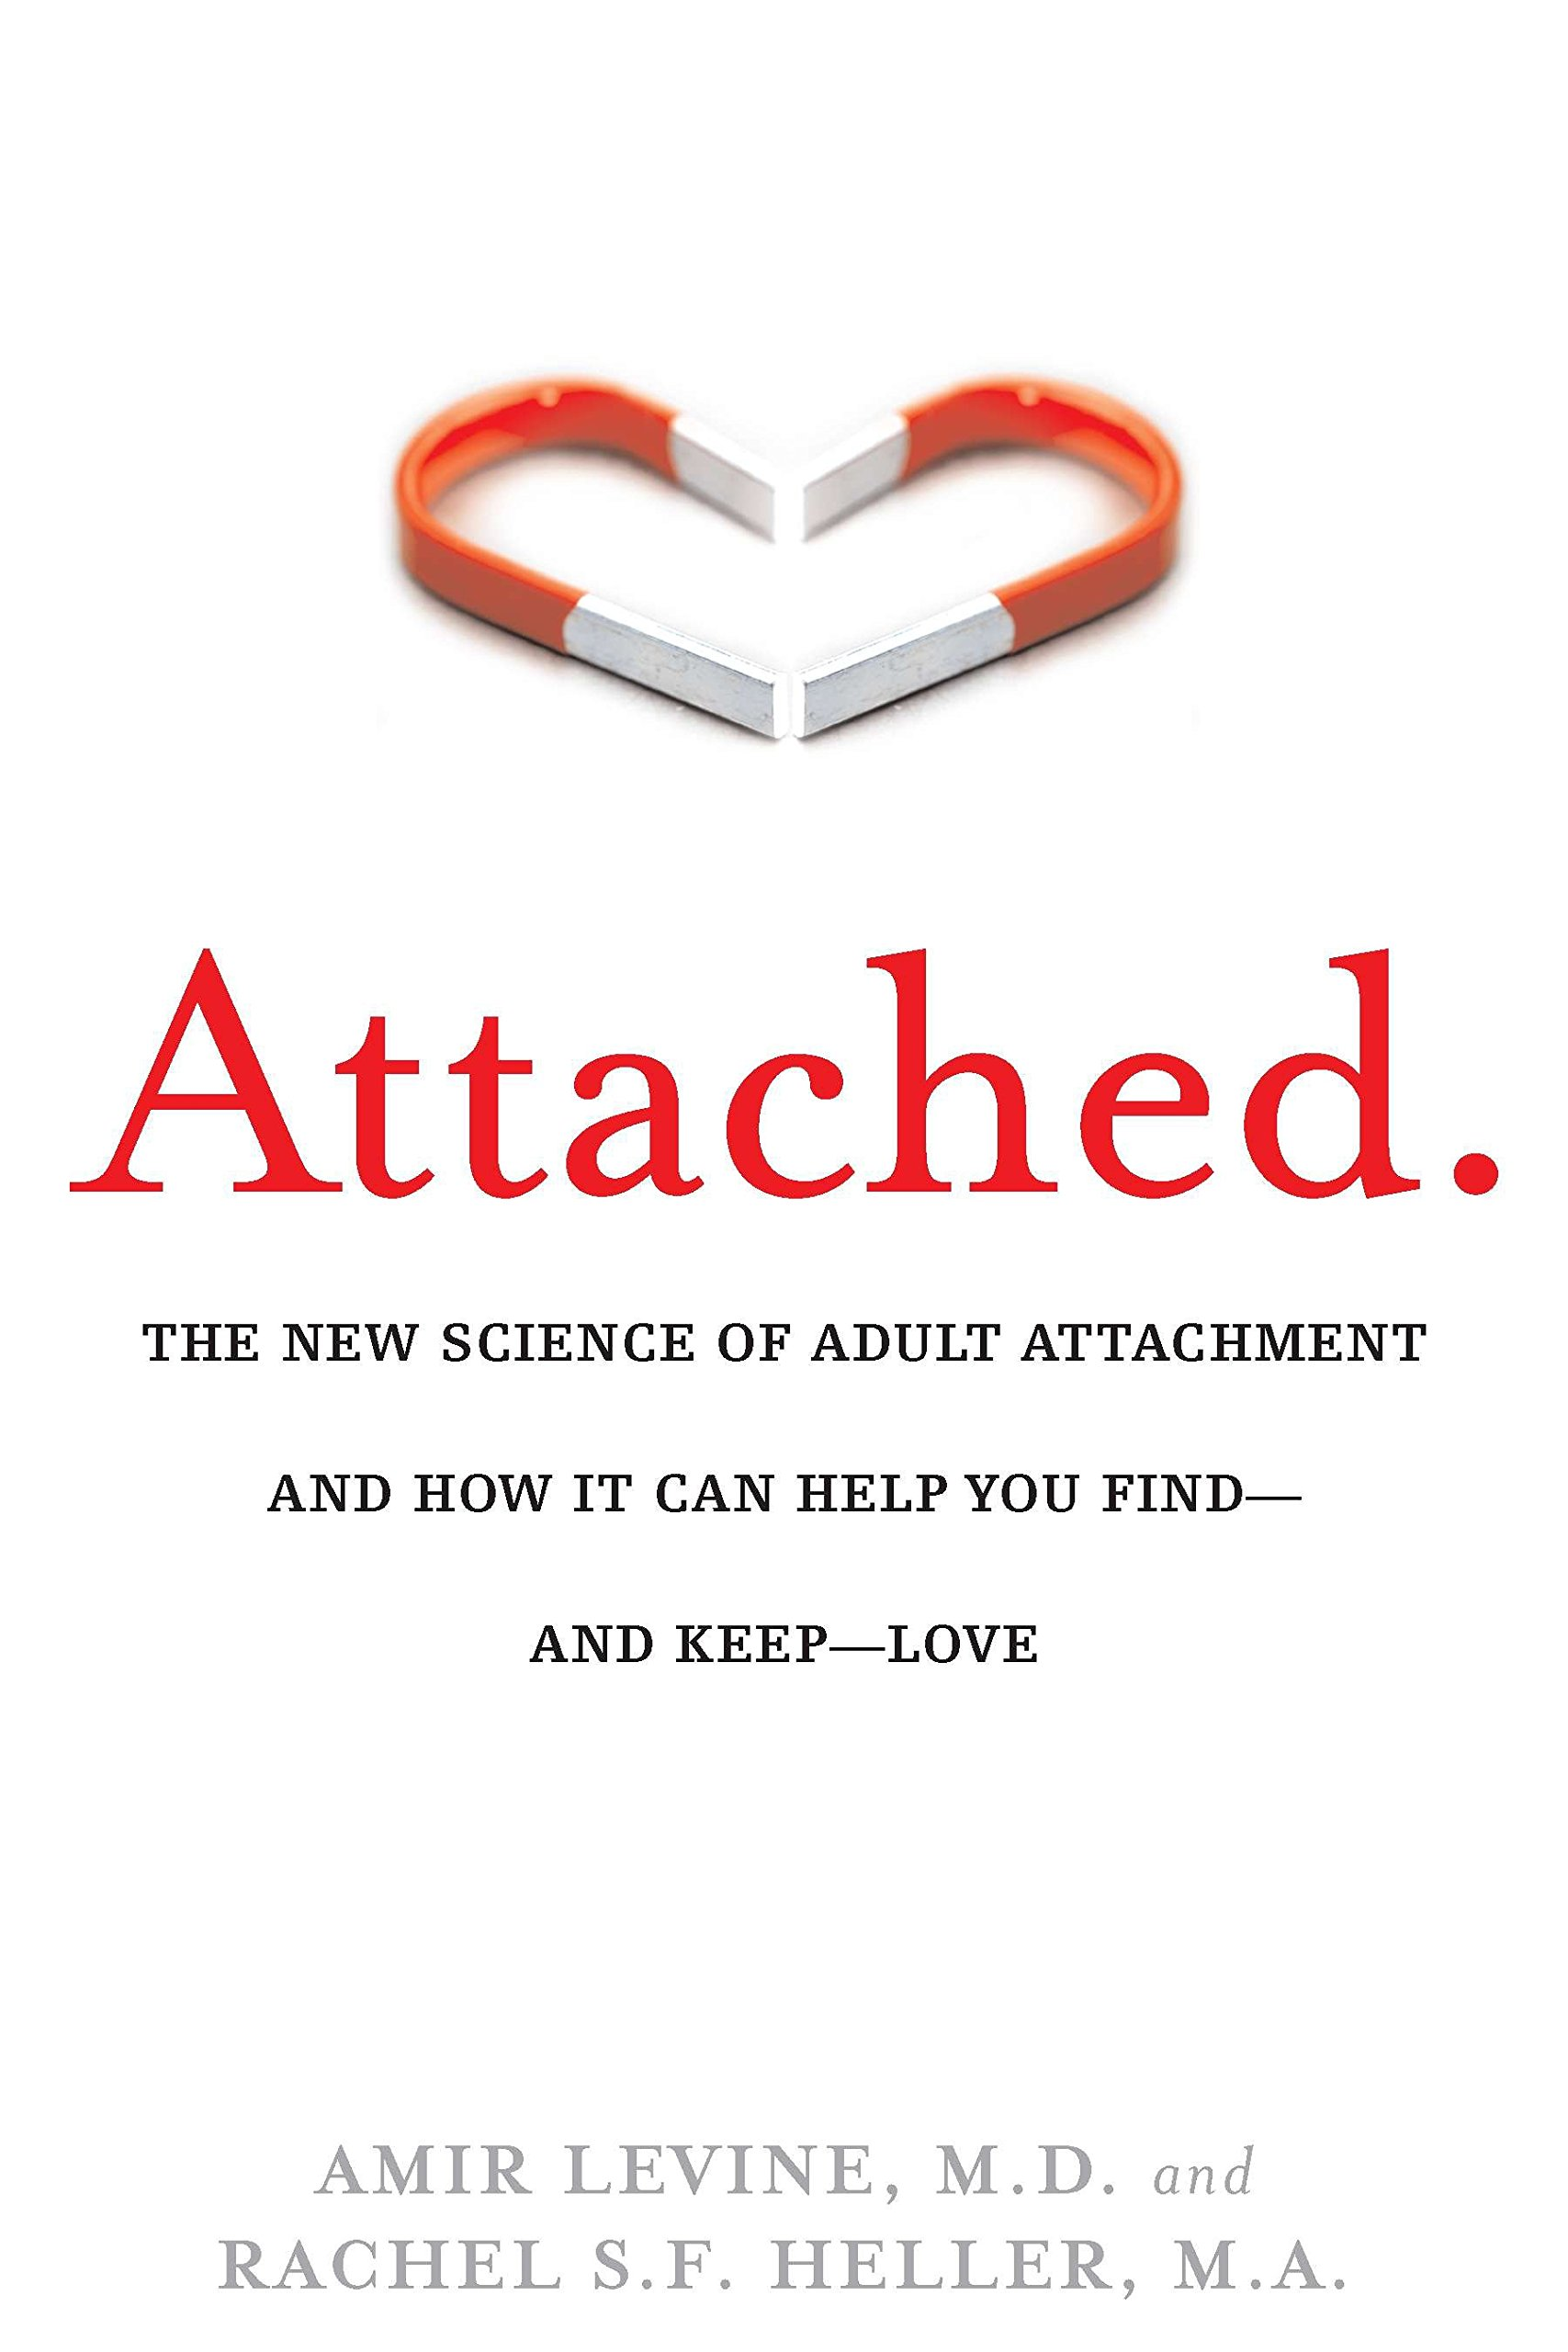 Amazon fr - Attached: The New Science of Adult Attachment